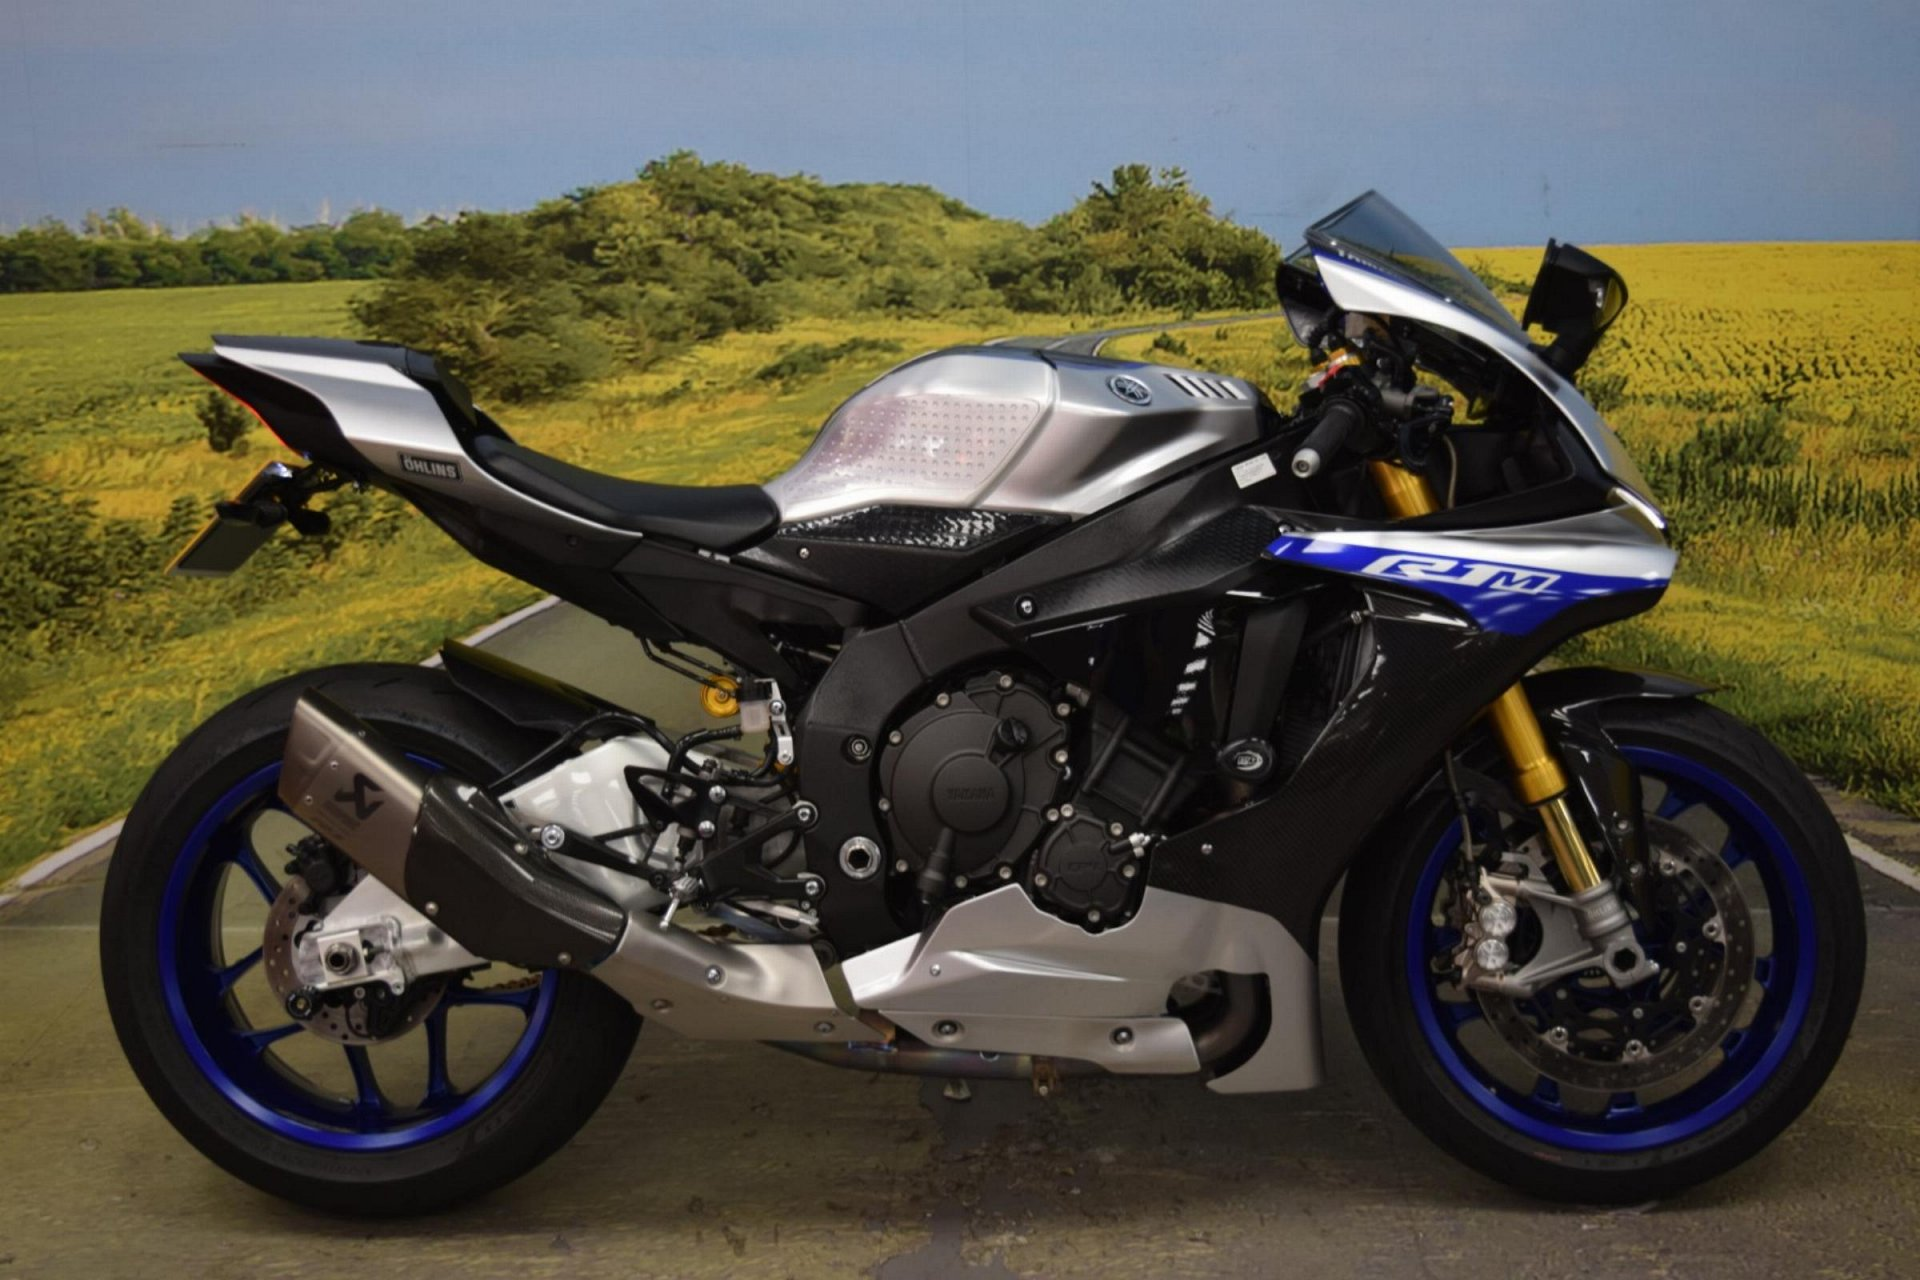 2017 Yamaha YZF R1M for sale in Staffordshire